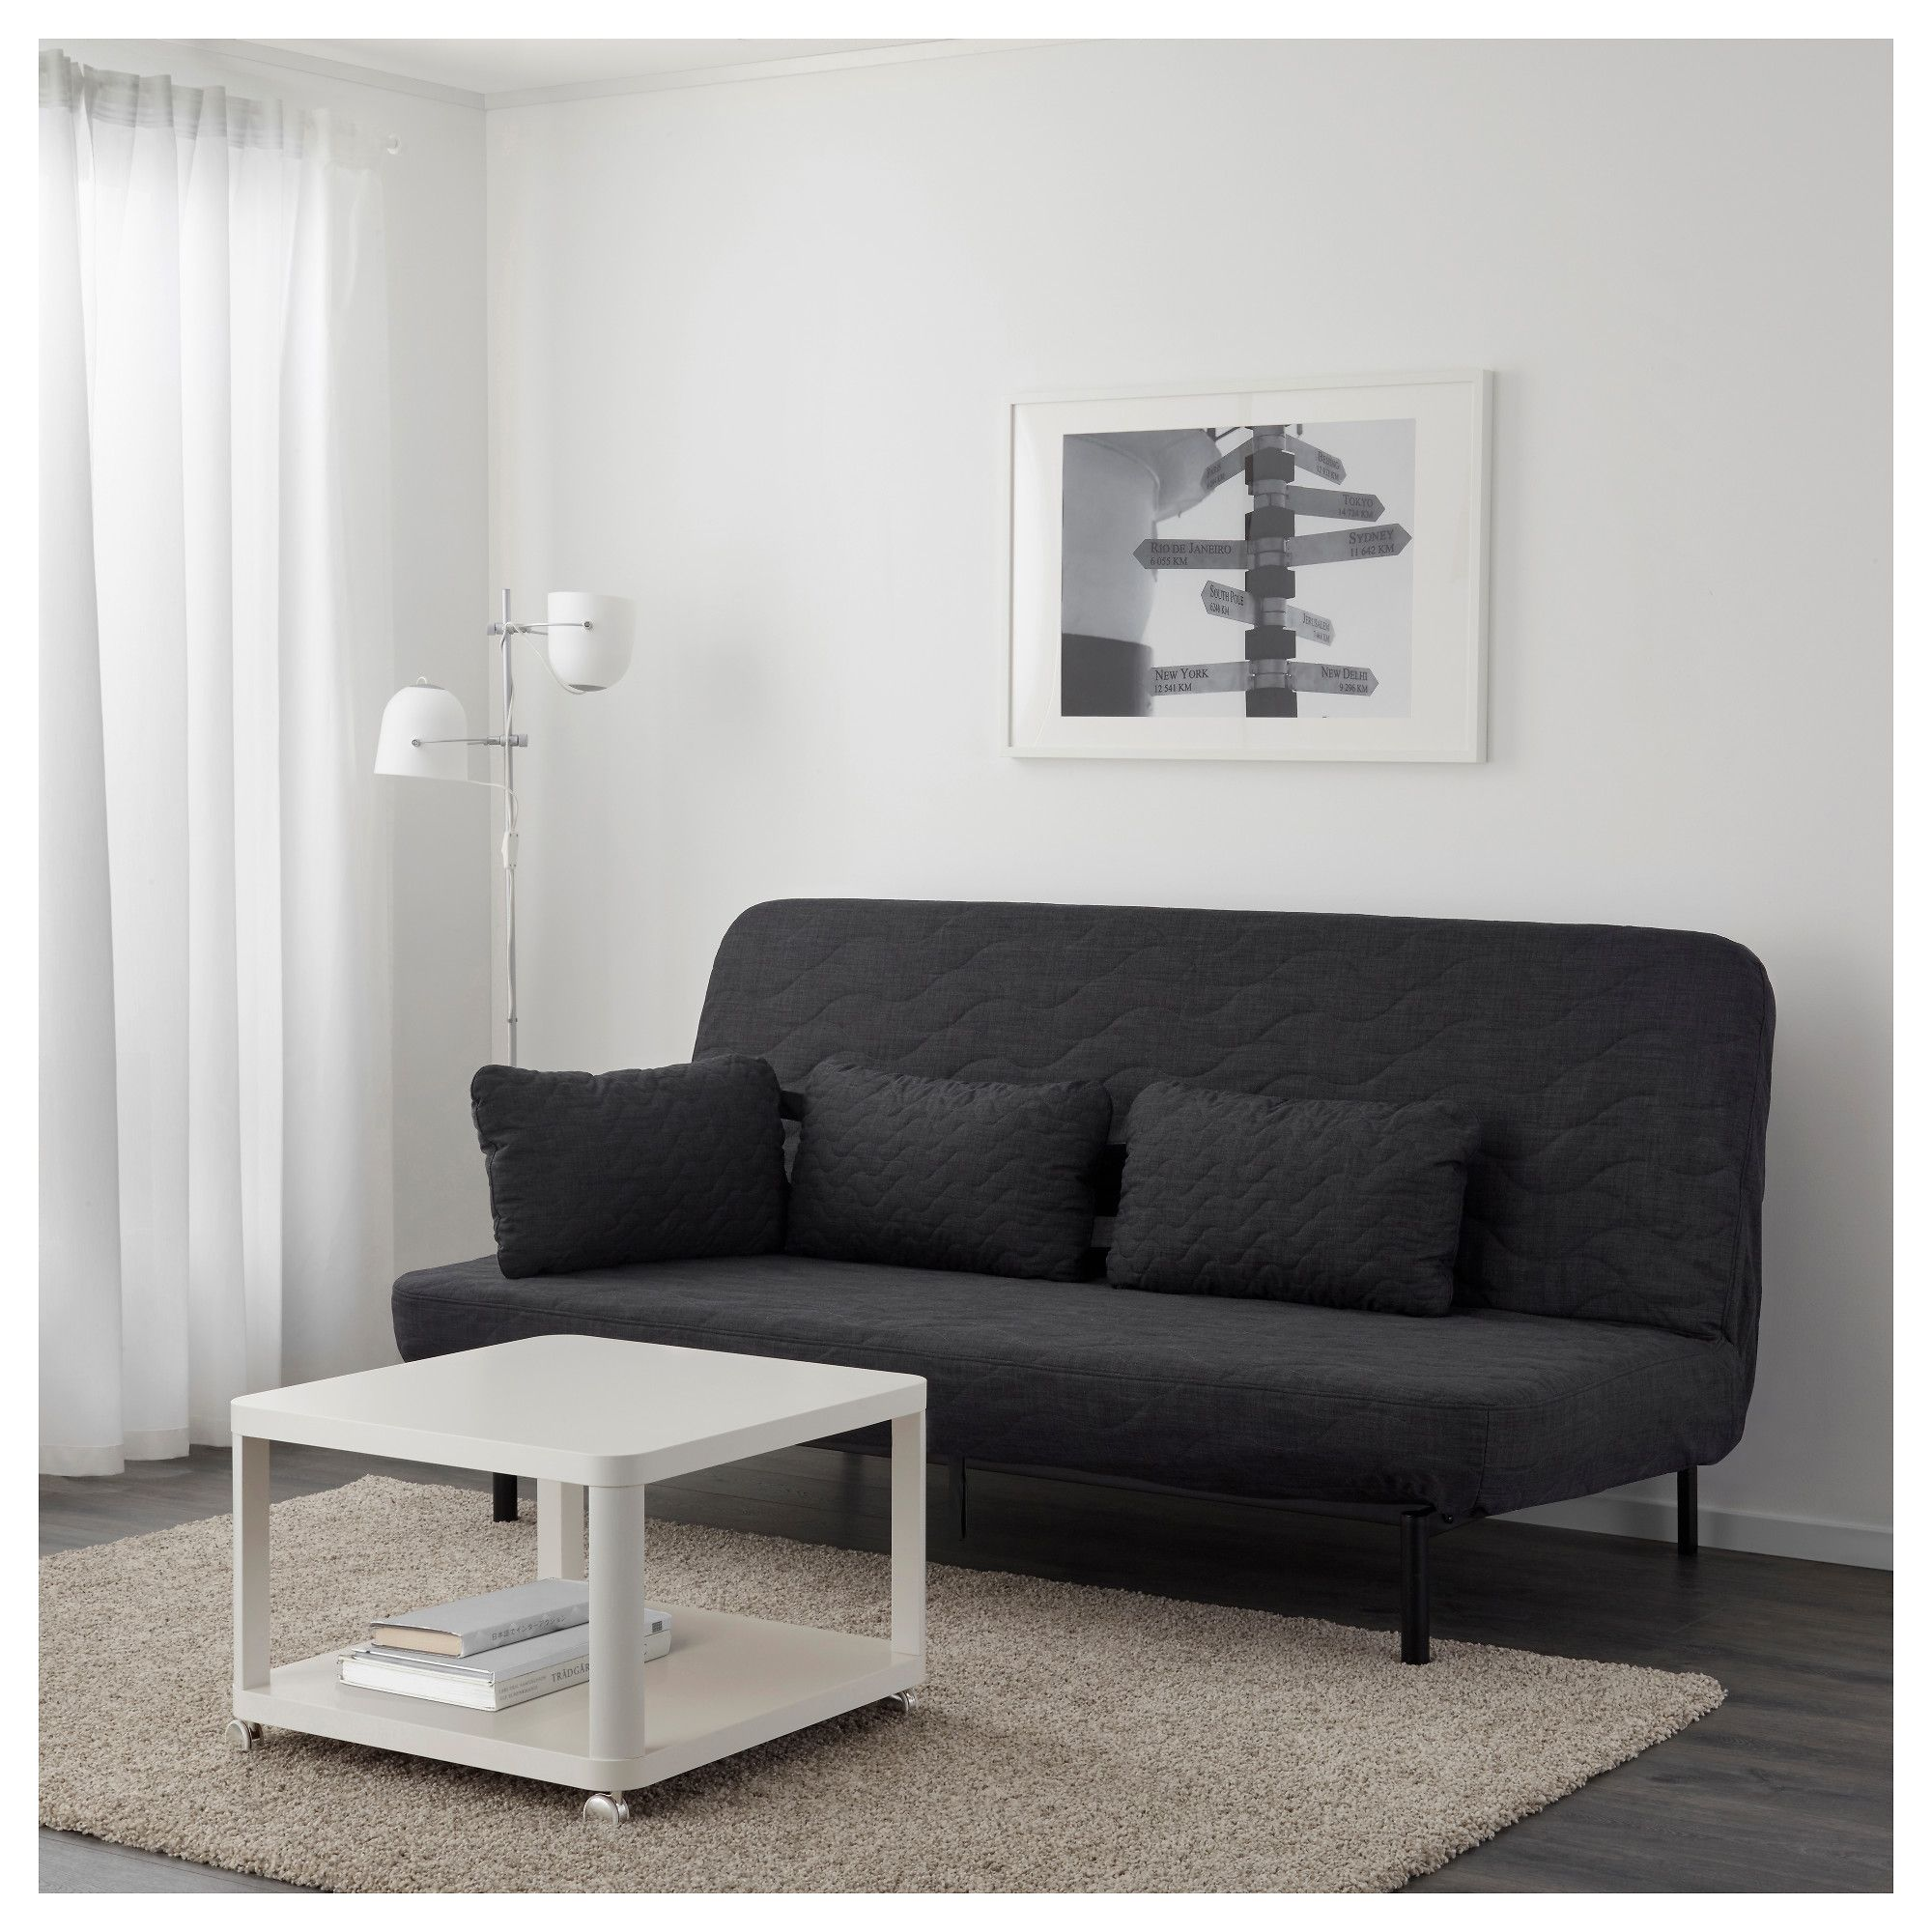 Ikea Couch Bett Trend Nyhamn Futon With Pocket Spring Mattress Skiftebo Anthracite